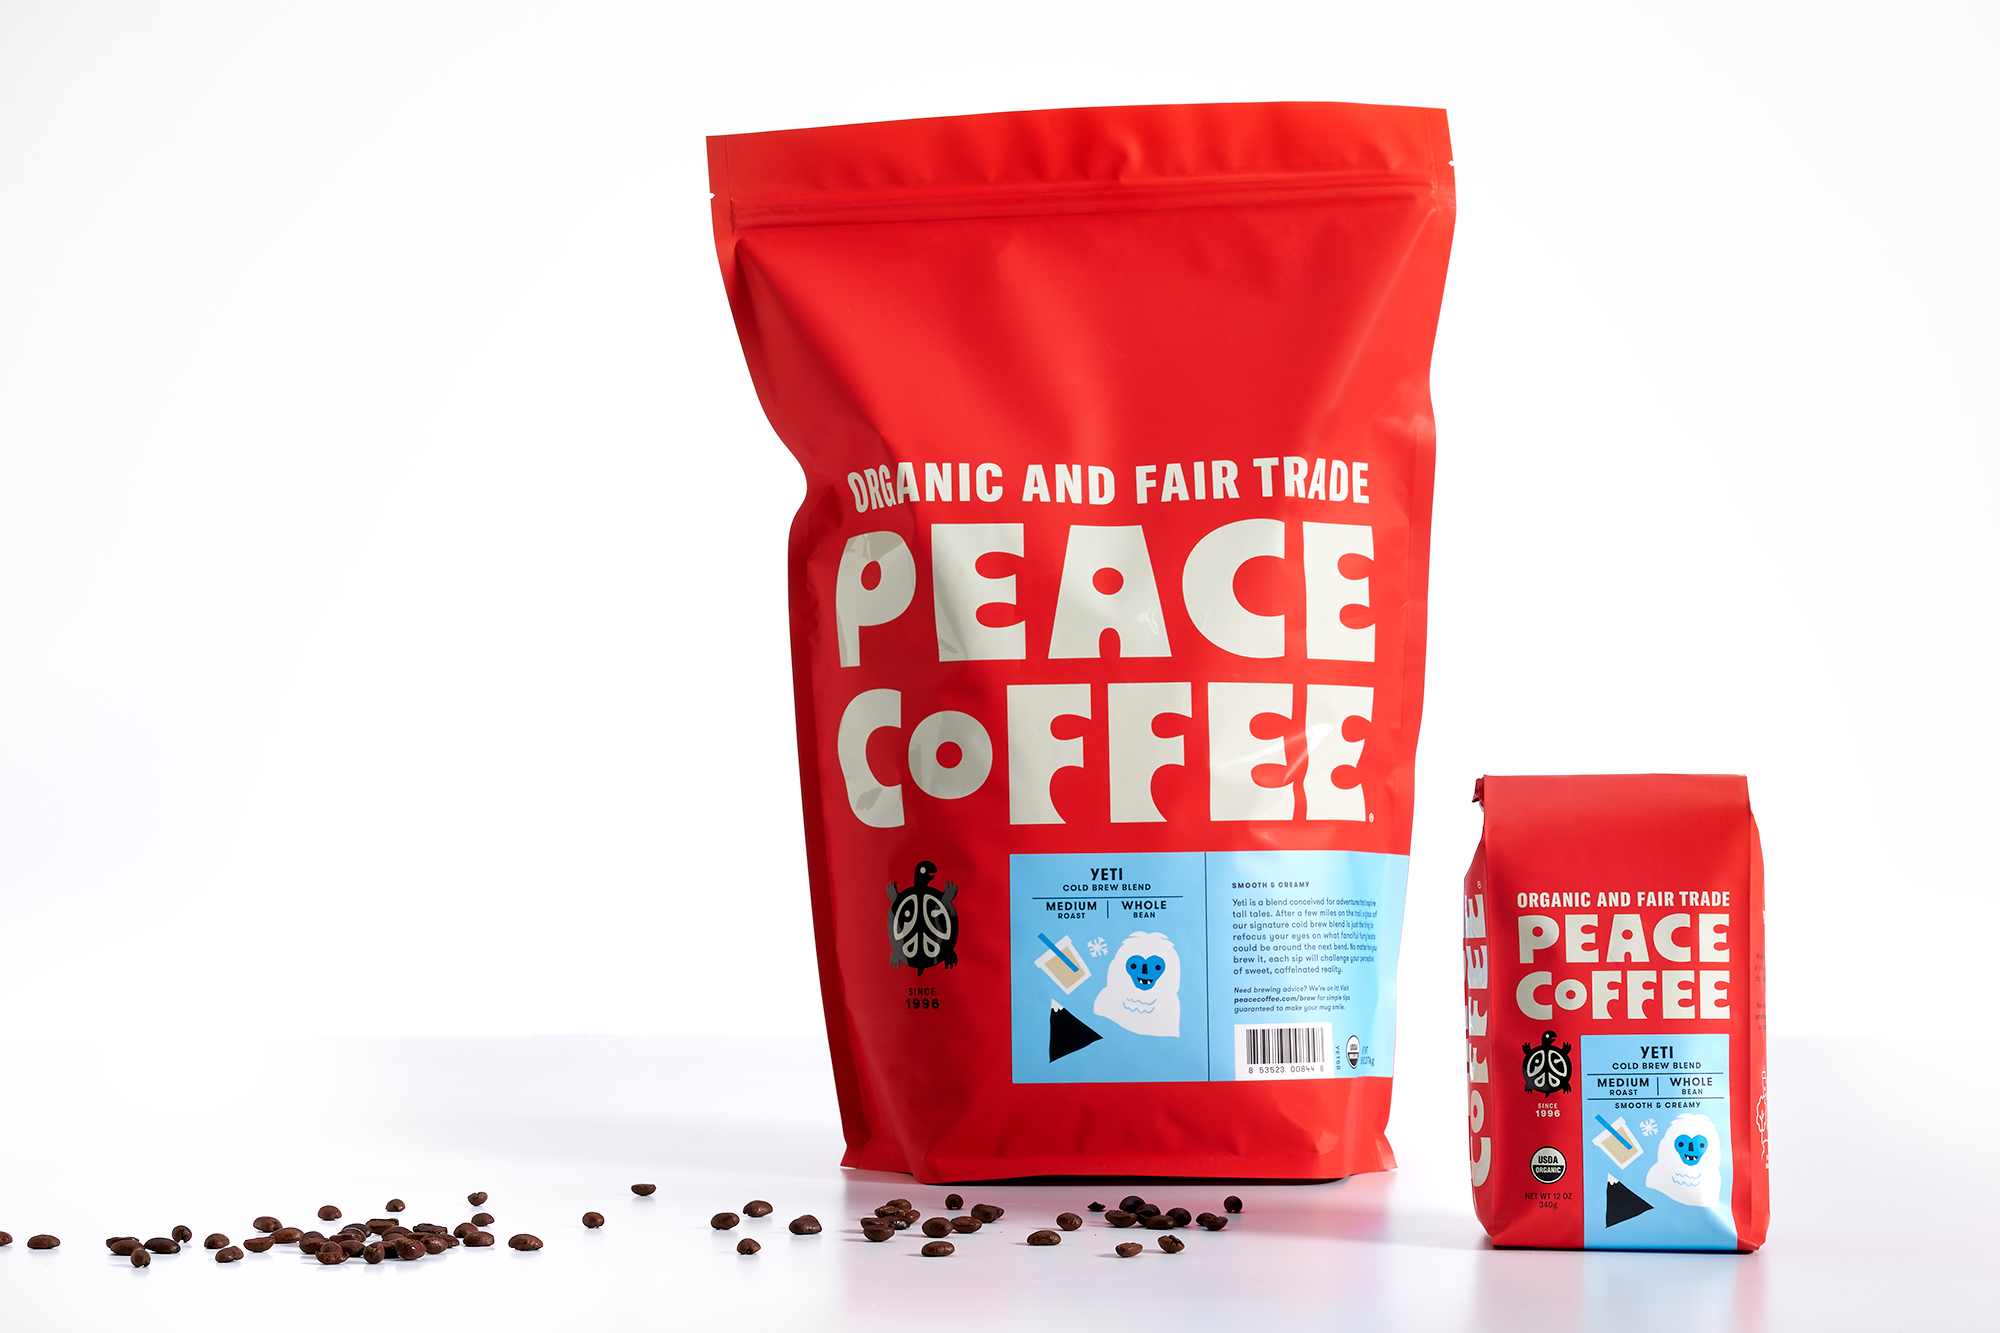 Peace Coffee packaging redesign and brand refresh designed by Abby Haddican.